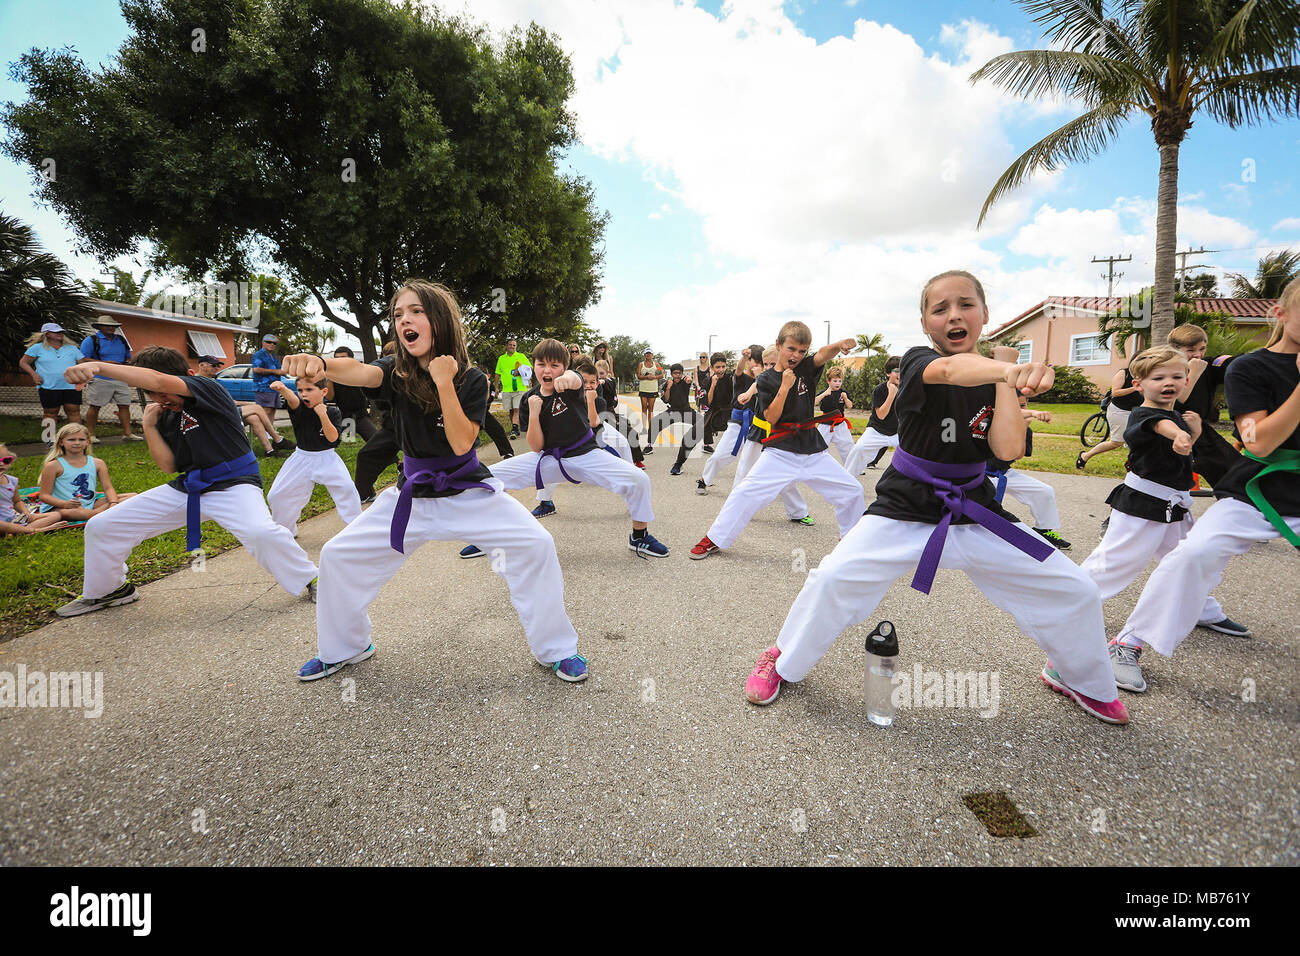 Florida, USA. 7th Apr, 2018. Legacy Mixed Martial Arts participates in the North Palm Beach Heritage Day Parade Saturday, April 7, 2018. The Parade featured bands, civic groups, clubs and organizations from the area. It traveled from North Palm Beach Village Hall north on Eastwind Drive, west on Lighthouse Drive, and south on Anchorage Drive, to end at Anchorage Park. The Heritage Festival held at Anchorage Park featured a business expo, carnival rides, food and drinks.games, musical entertainment, a cornhole tournament, and more. (Credit Image: © Bruce R. Bennett/The Palm Beach Post via Z - Stock Image